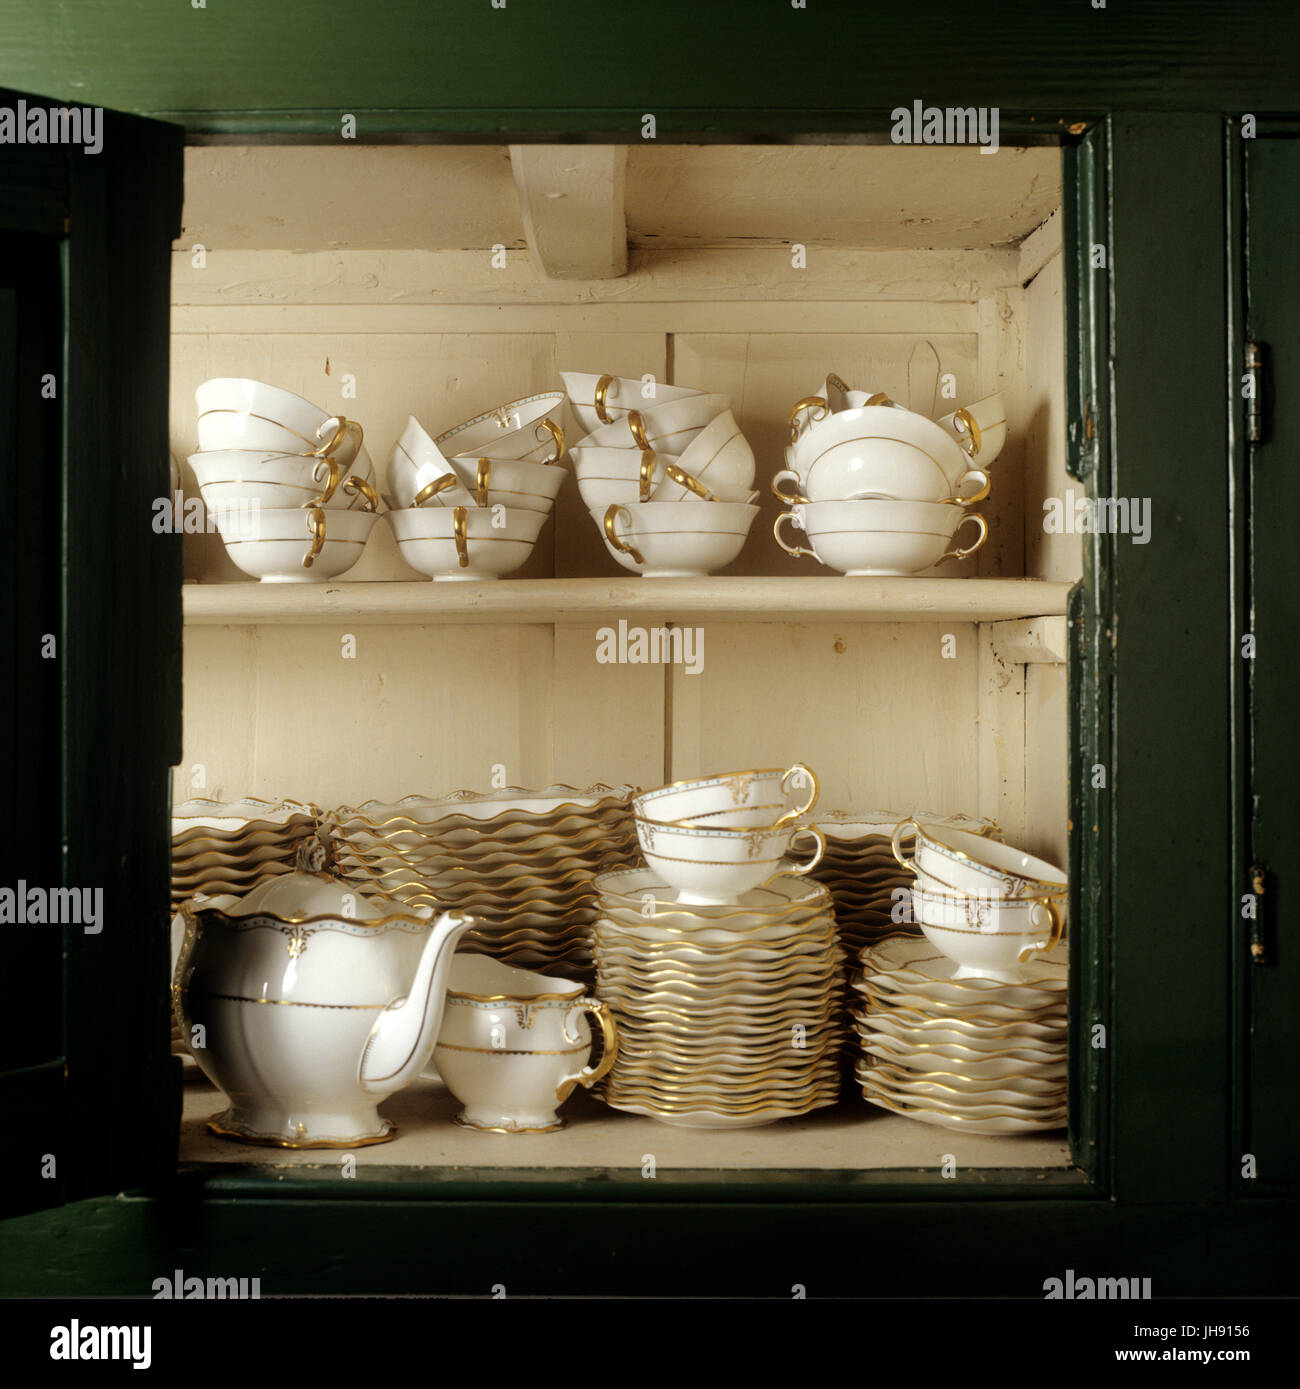 Messy Cups Plates: Cluttered Messy Shelves Stock Photos & Cluttered Messy